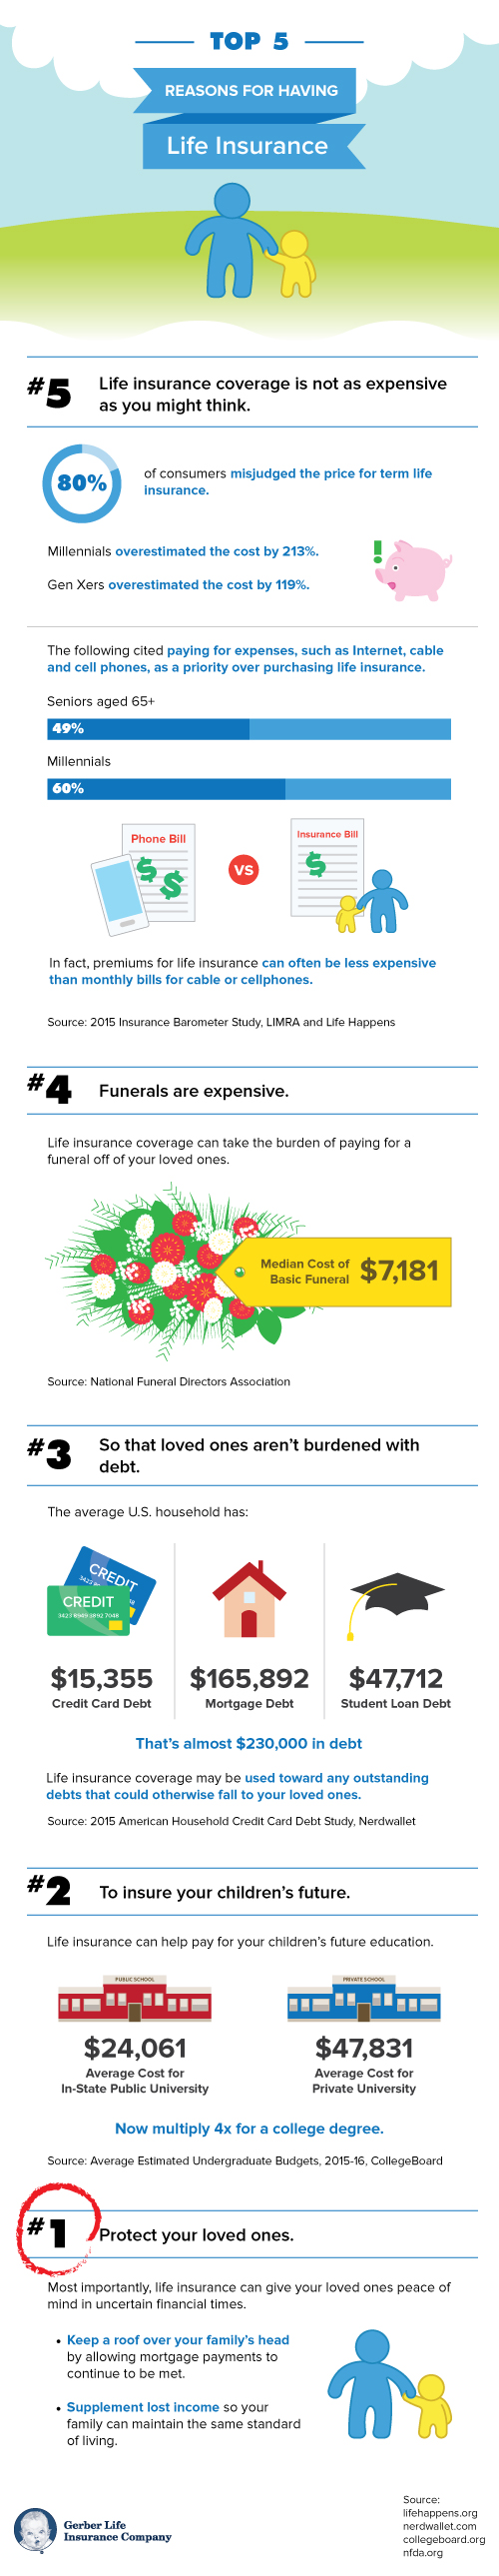 Reasons to have life insurance infographic